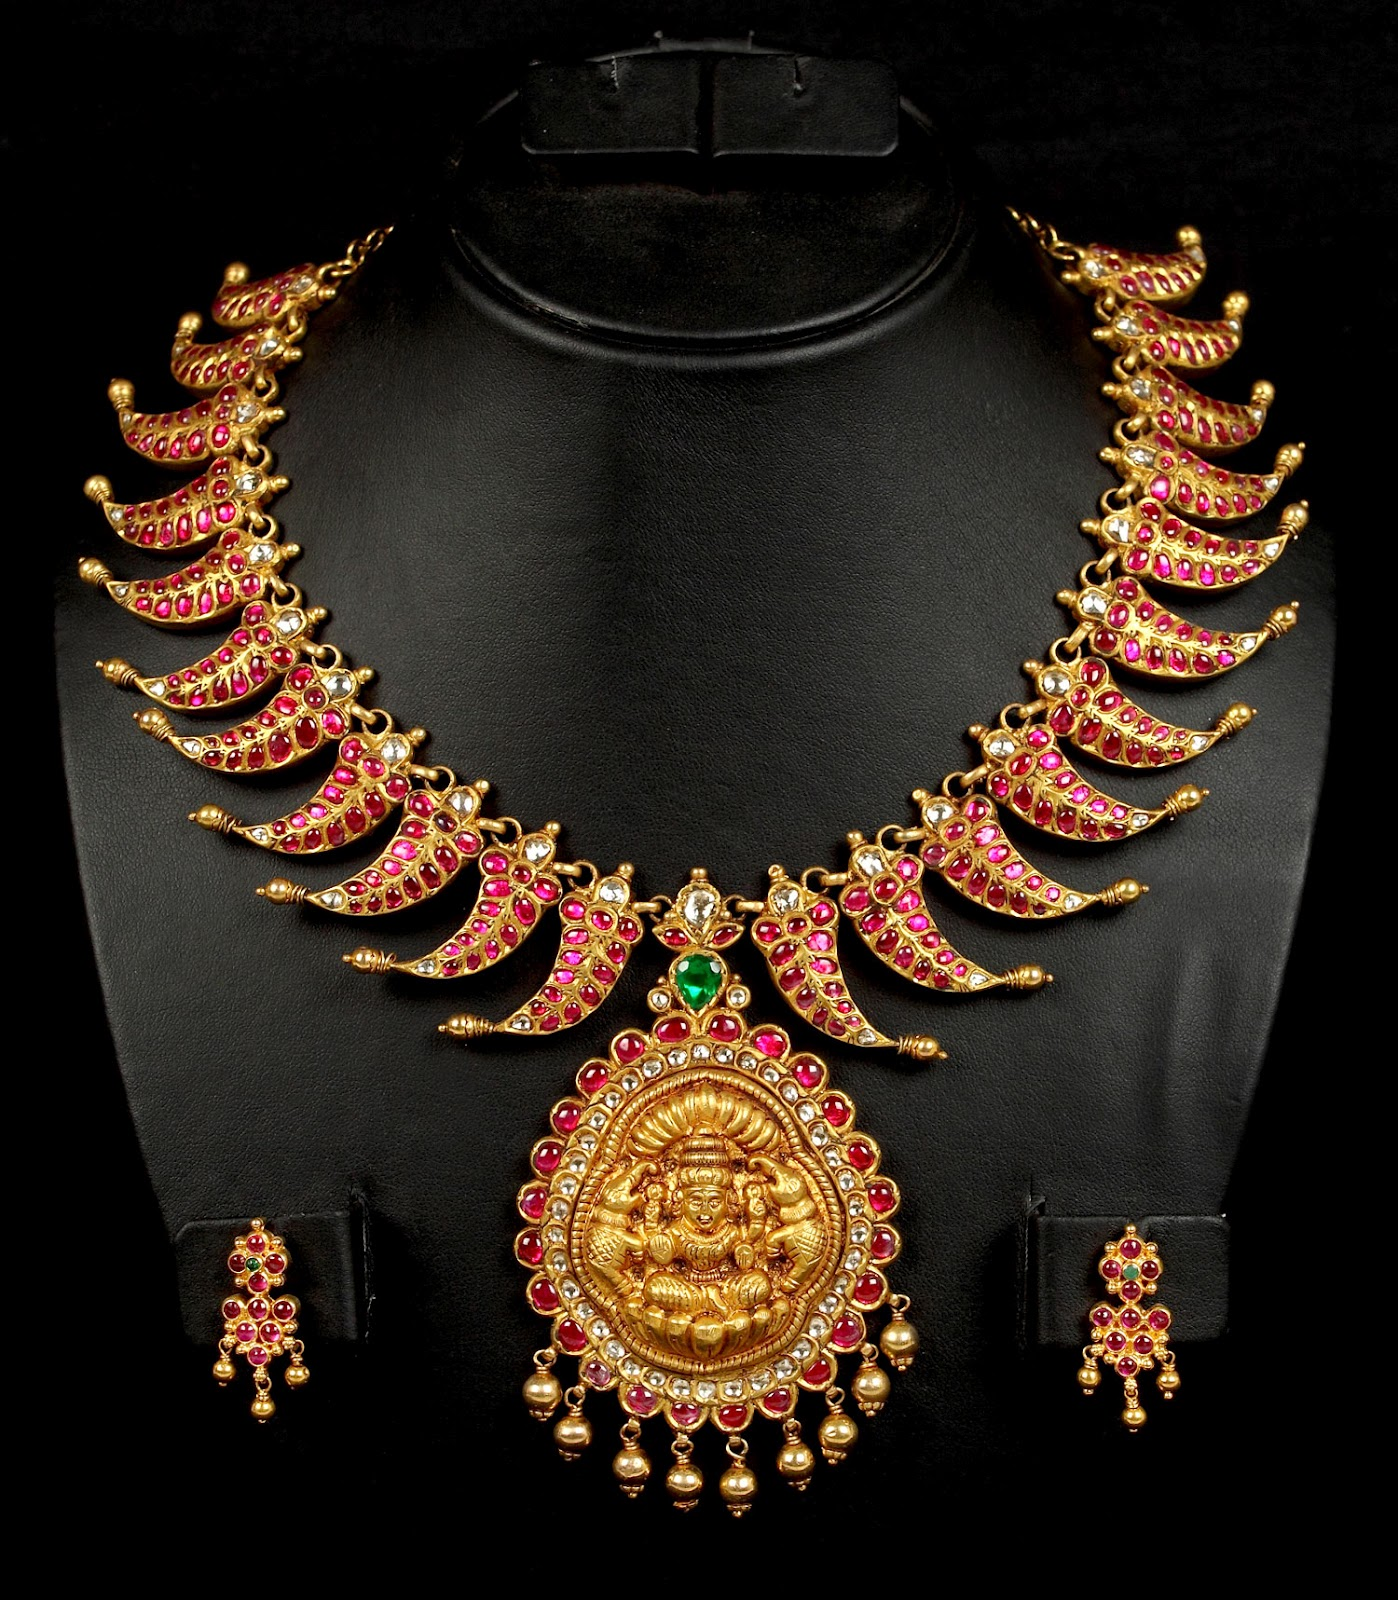 Latest Indian Jewellery Designs 2015: South Indian Bridal Wedding Jewellery